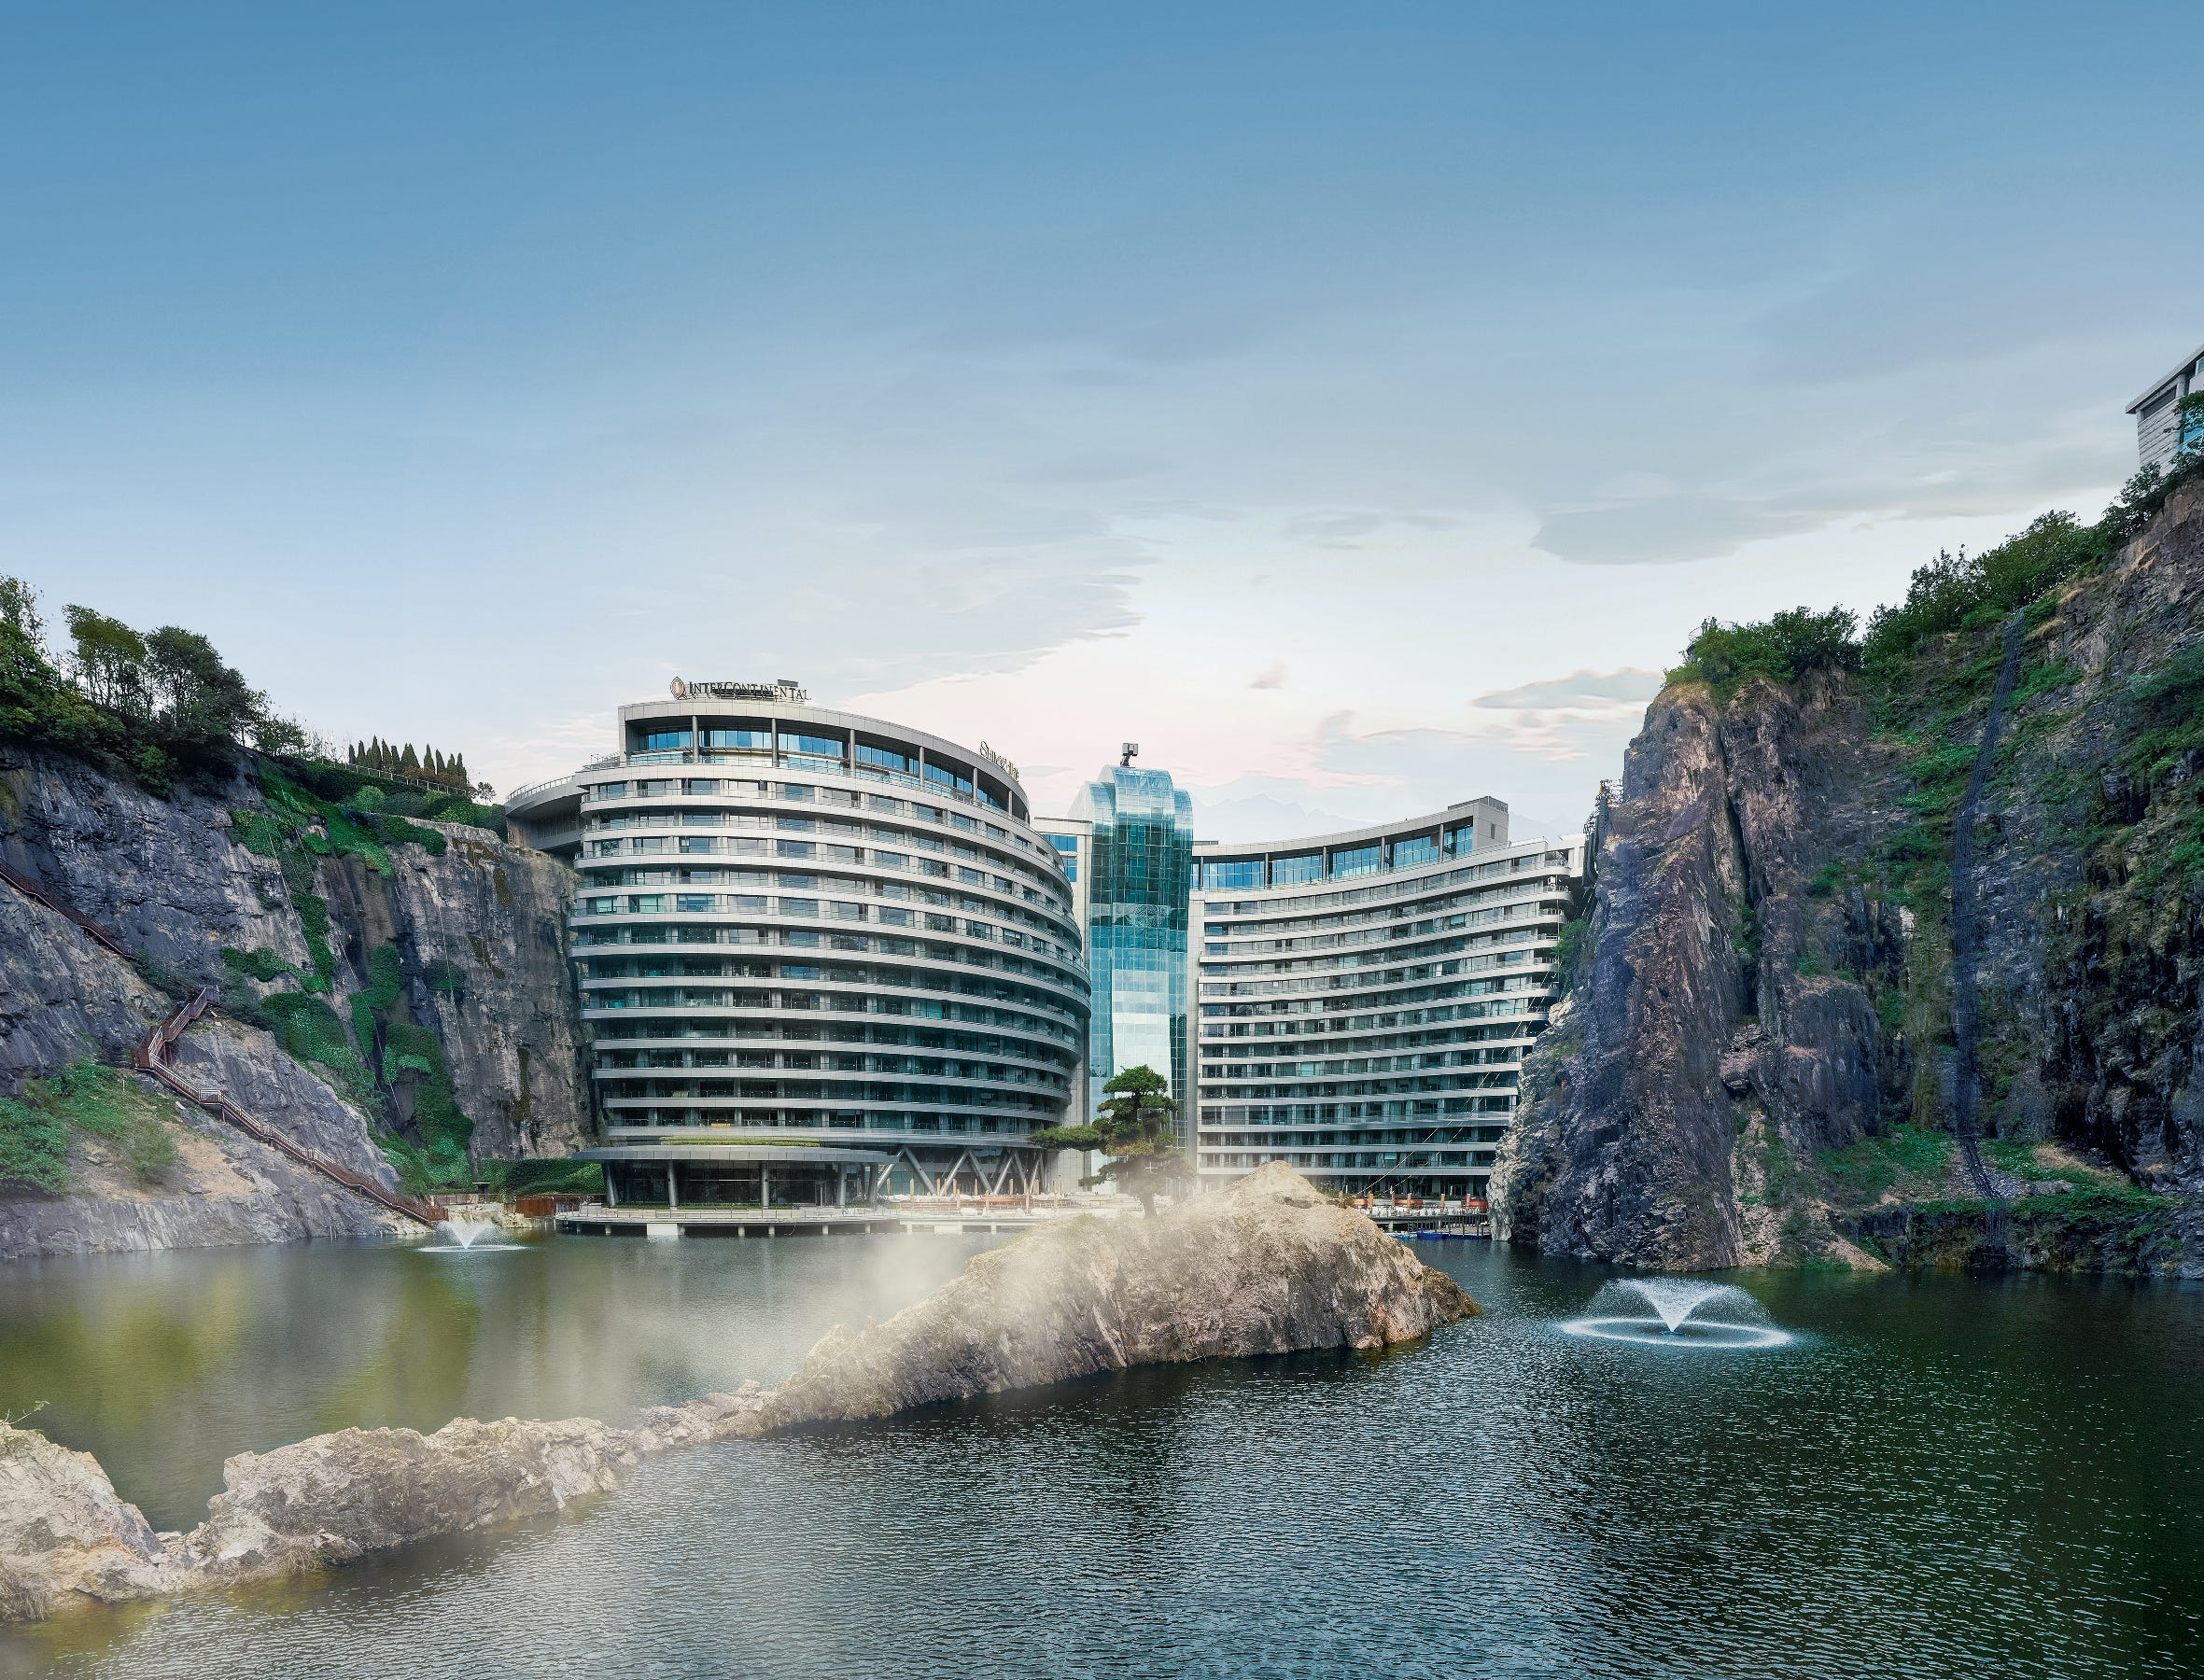 Located 30 miles from downtown Shanghai, this 18-floor building is a feat of architectural design. One floor of accommodations is underwater offering aquarium-facing guest rooms and a restaurant while the rest of the hotel sinks nearly 300 feet below the Earth's surface above. It was built inside an abandoned quarry and today serves as a tourist resort destination.